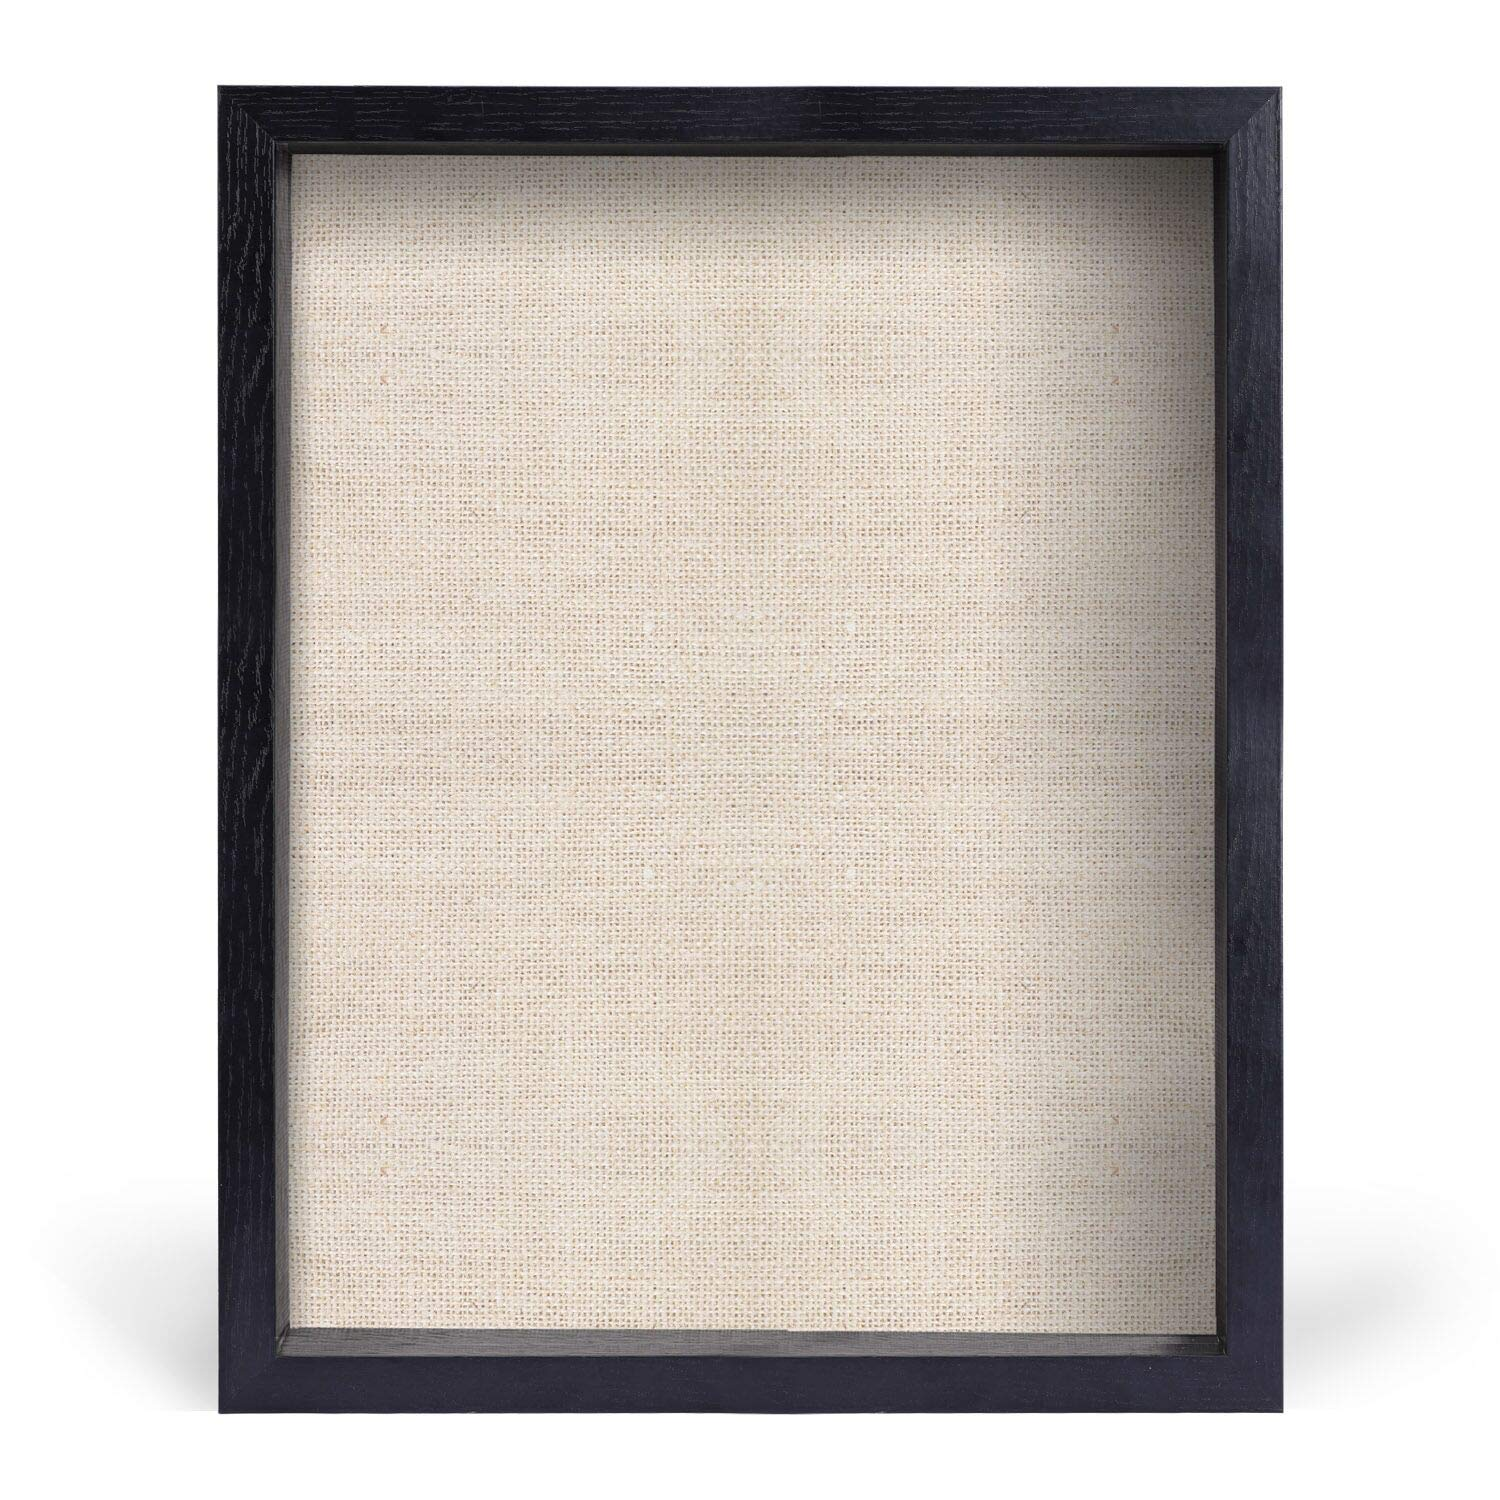 12x15 Shadow Box Frame with Soft Linen Back - Box Display Picture Frame for Memorabilia, Pins, Awards, Medals, Tickets and Photos